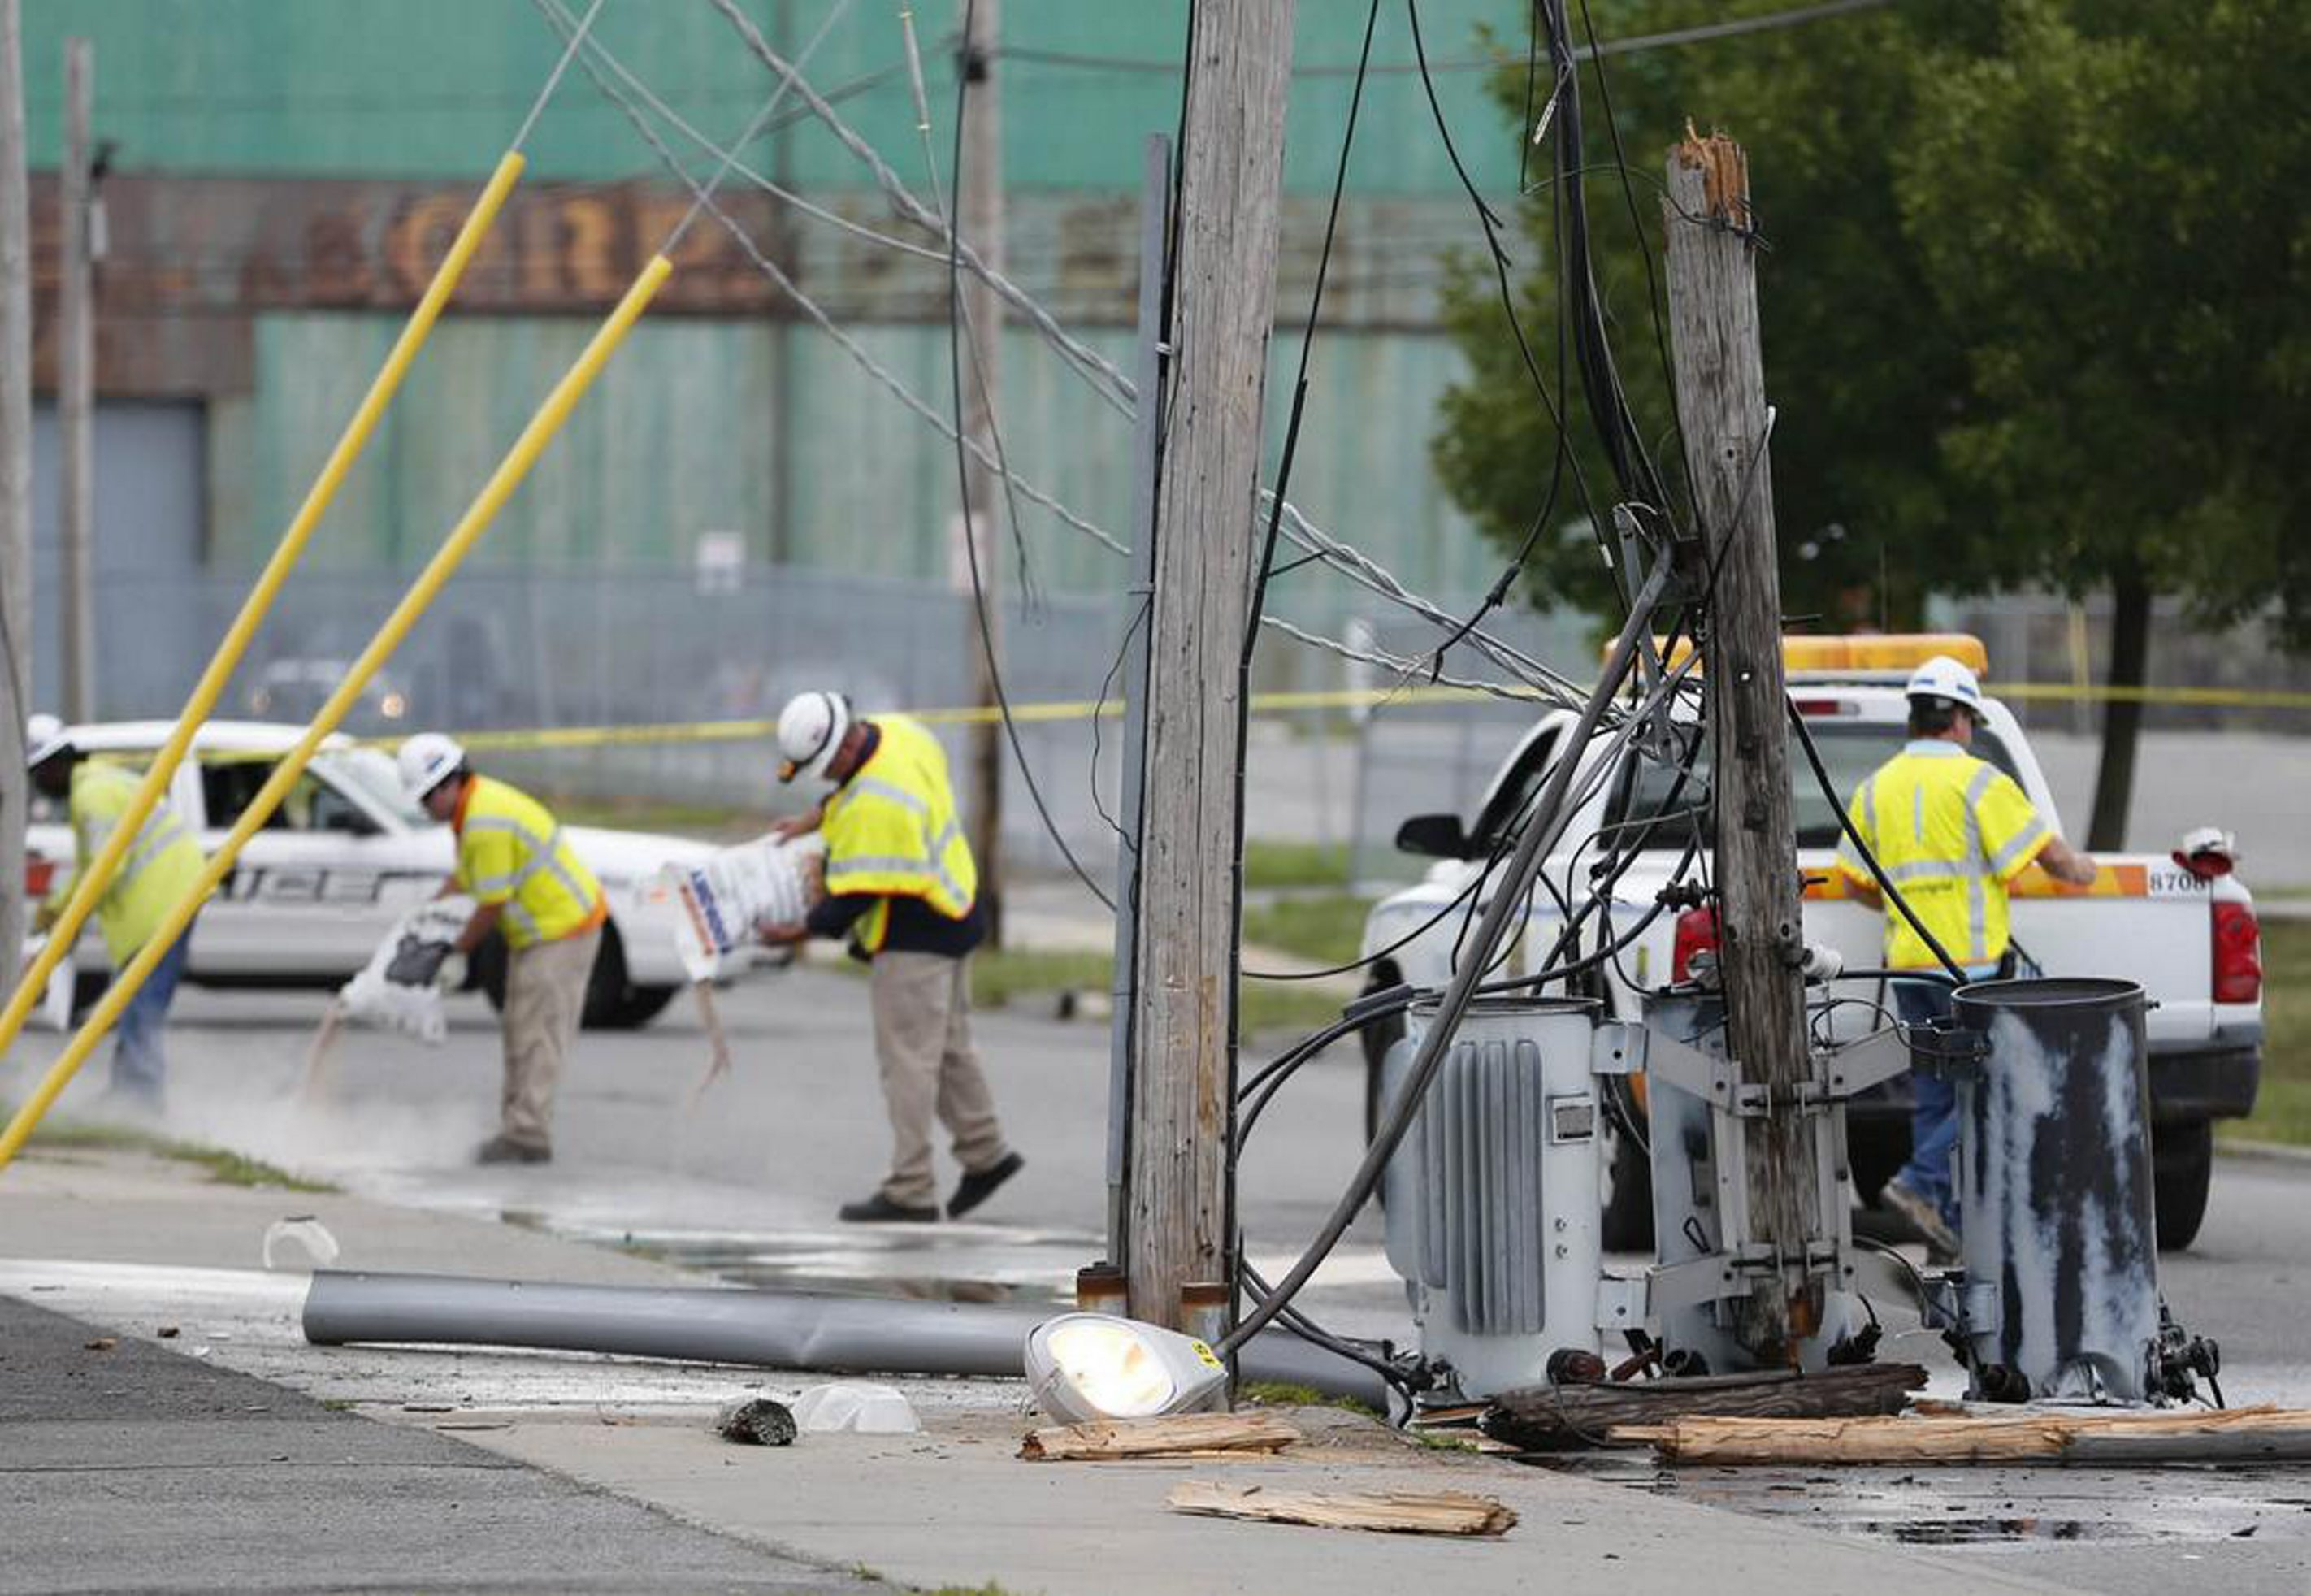 National Grid cleans up oil from a transformer bank that fell after a truck snagged a line on Letchworth near Grant.